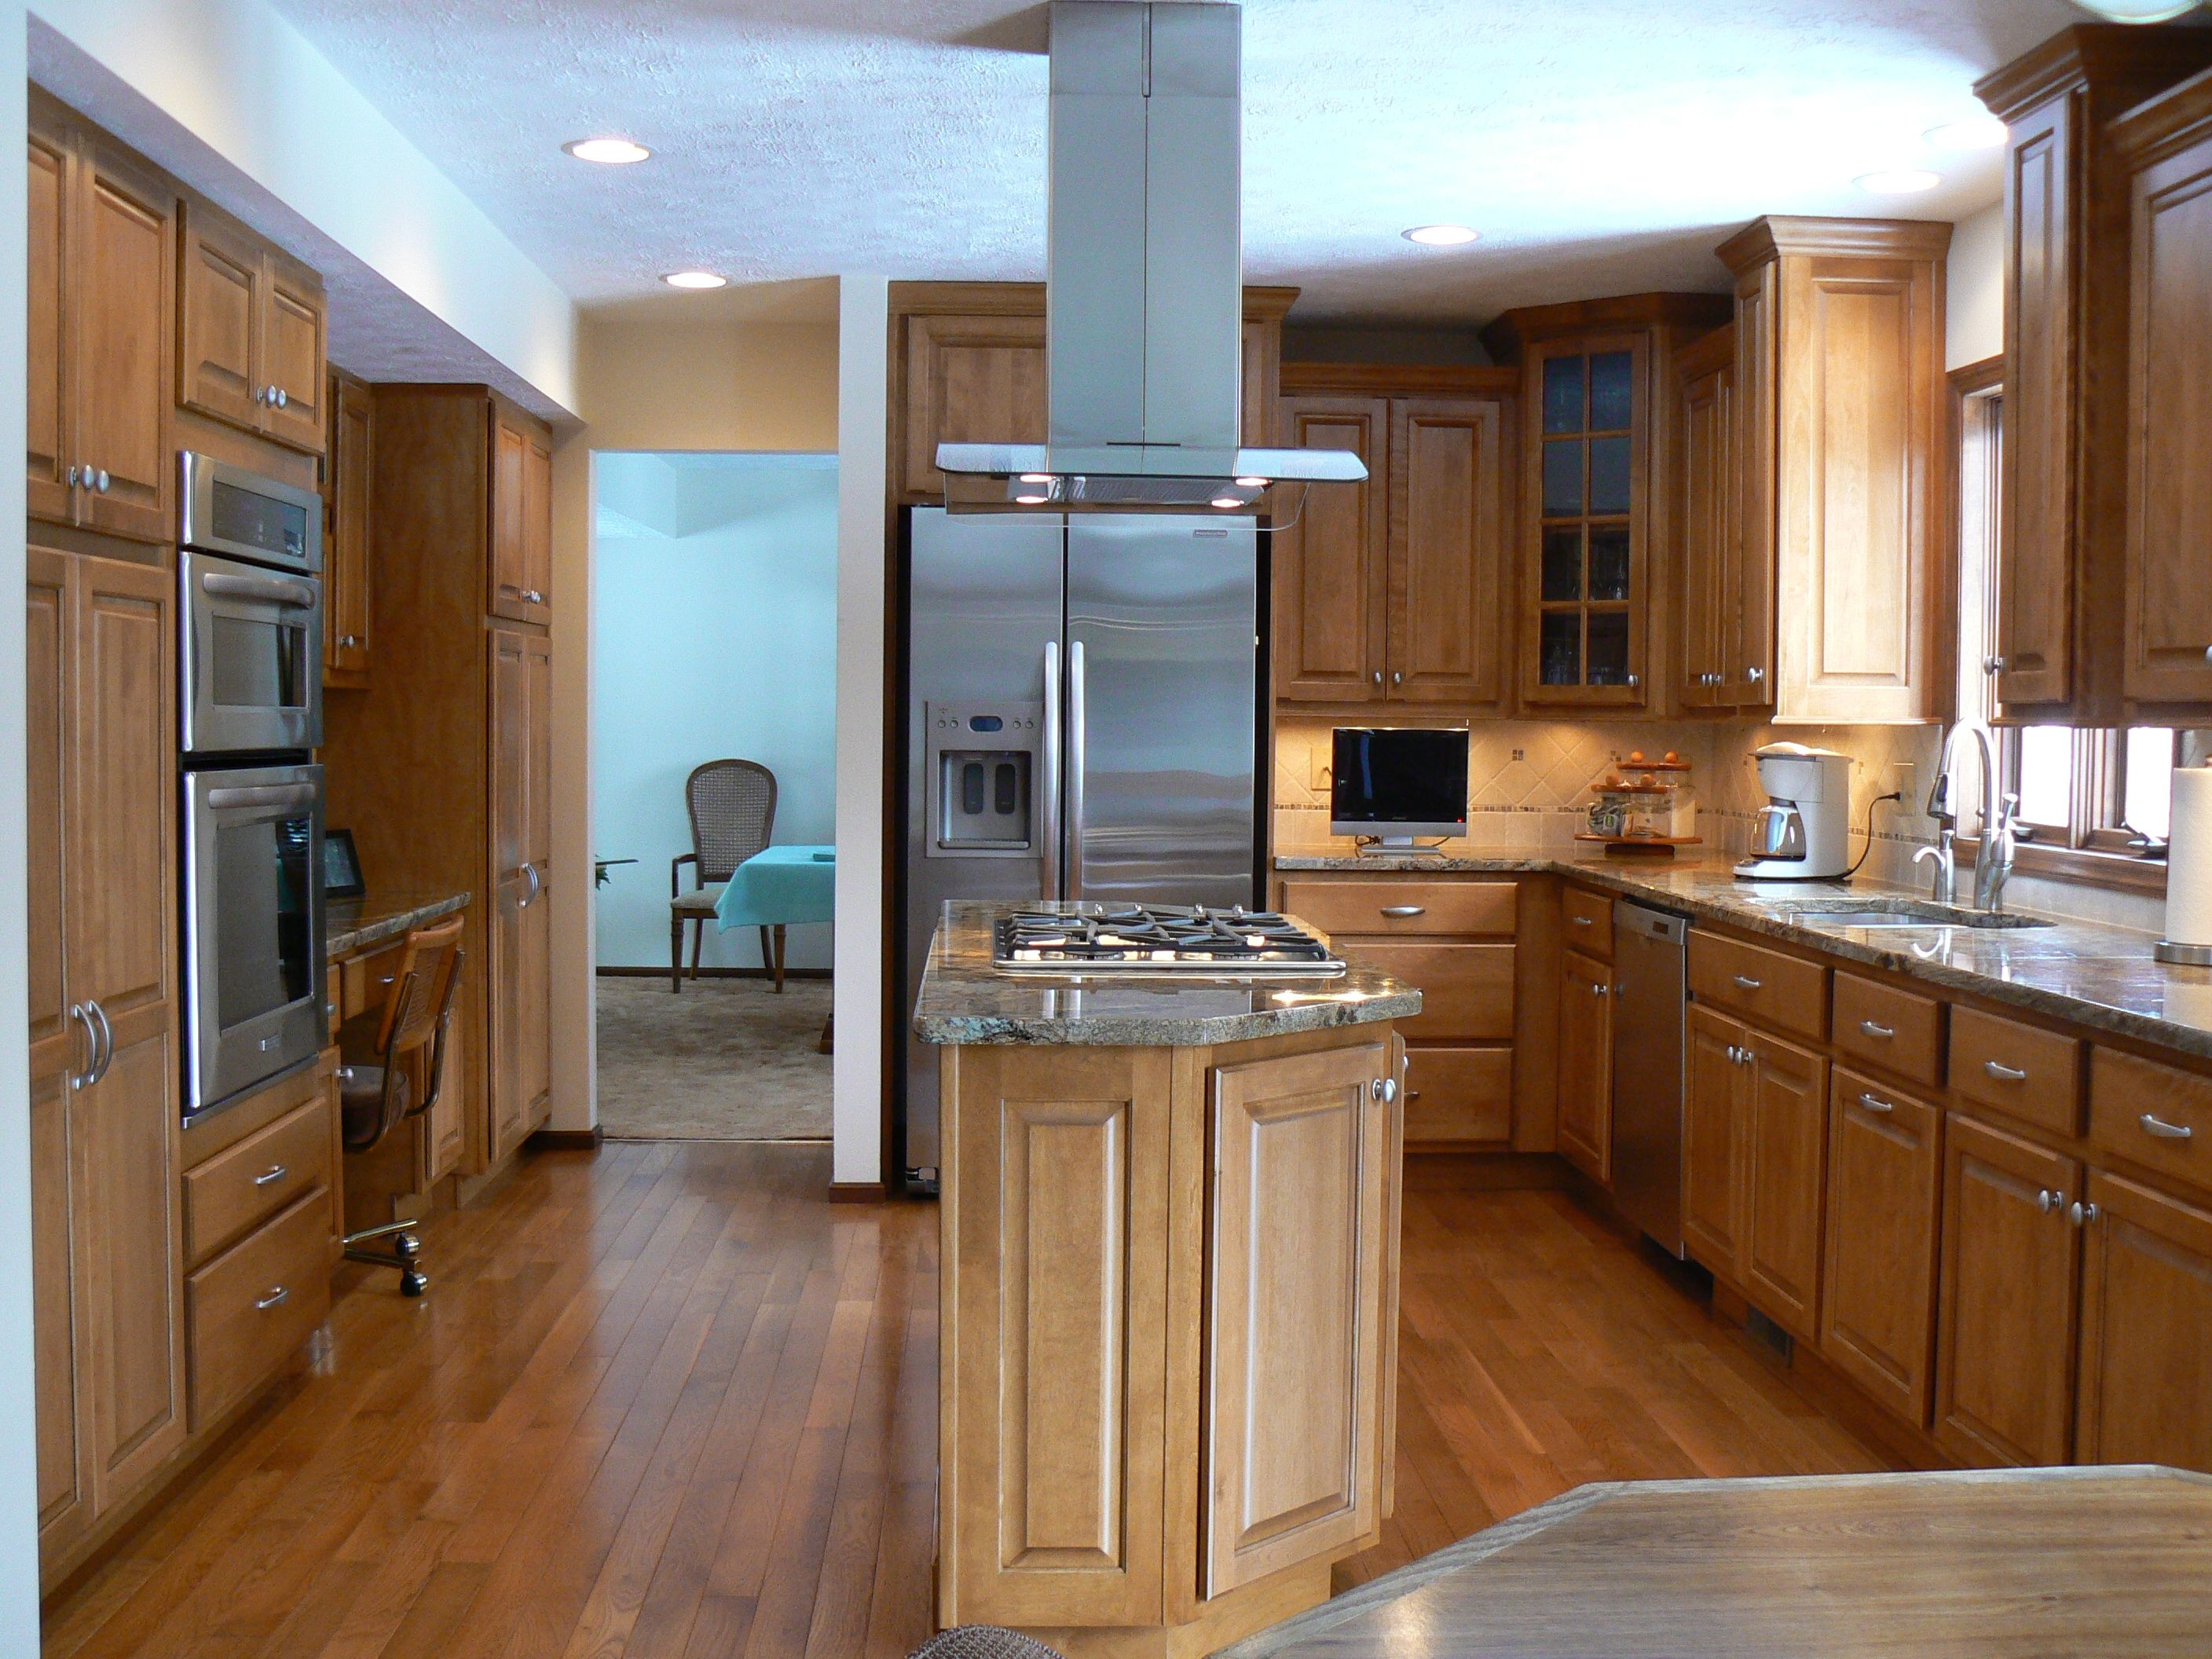 Best Kitchen Gallery: Amish Cabi S Dayton From Amish Built Kitchen Cabi S of Amish Built Kitchen on cal-ite.com